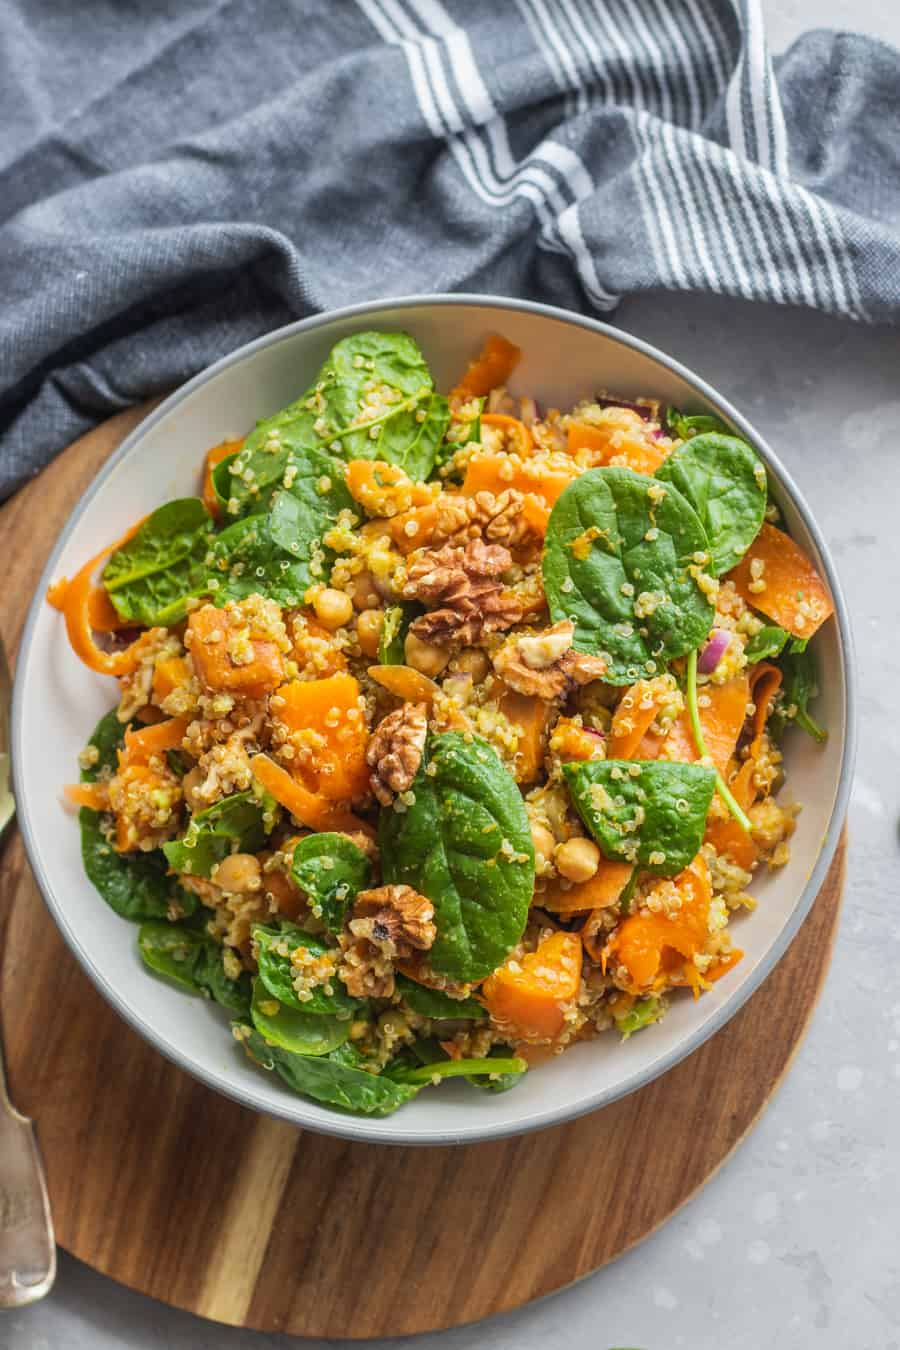 Chickpea quinoa salad with pumpkin